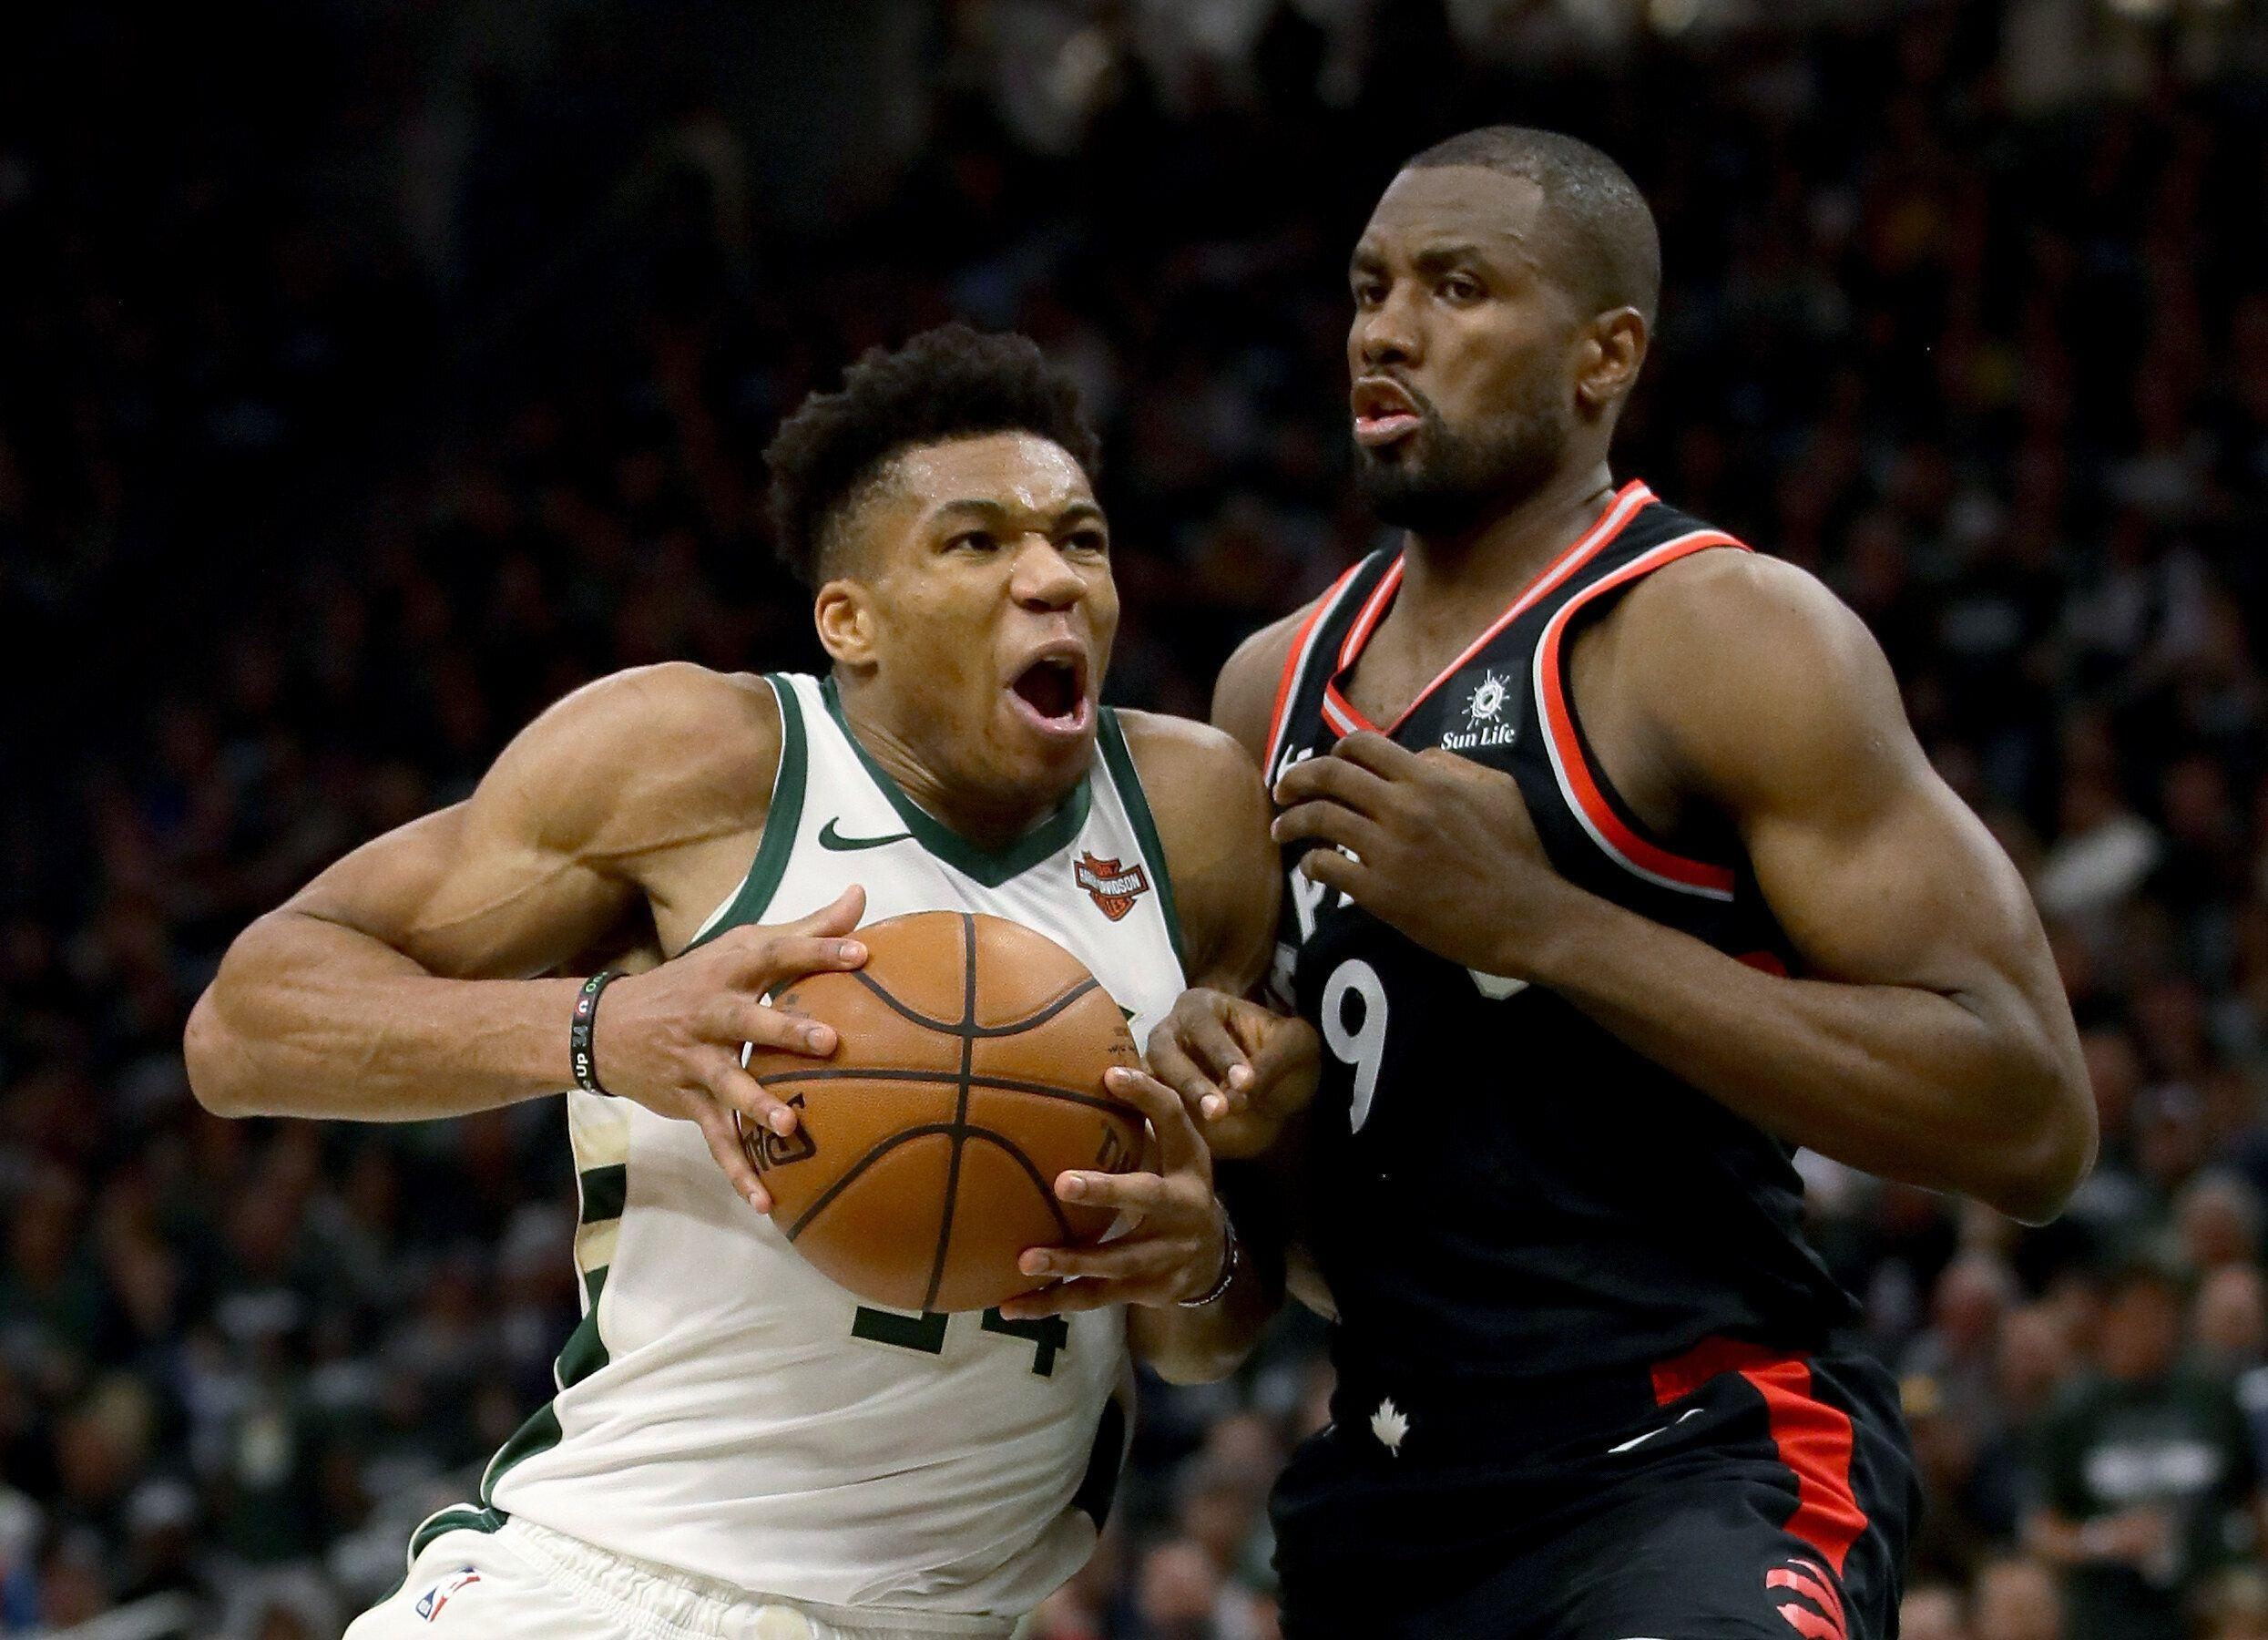 de071d6d5b6 NBA Playoffs: Bucks fly past Raptors in Game 2 of Eastern Conference Finals